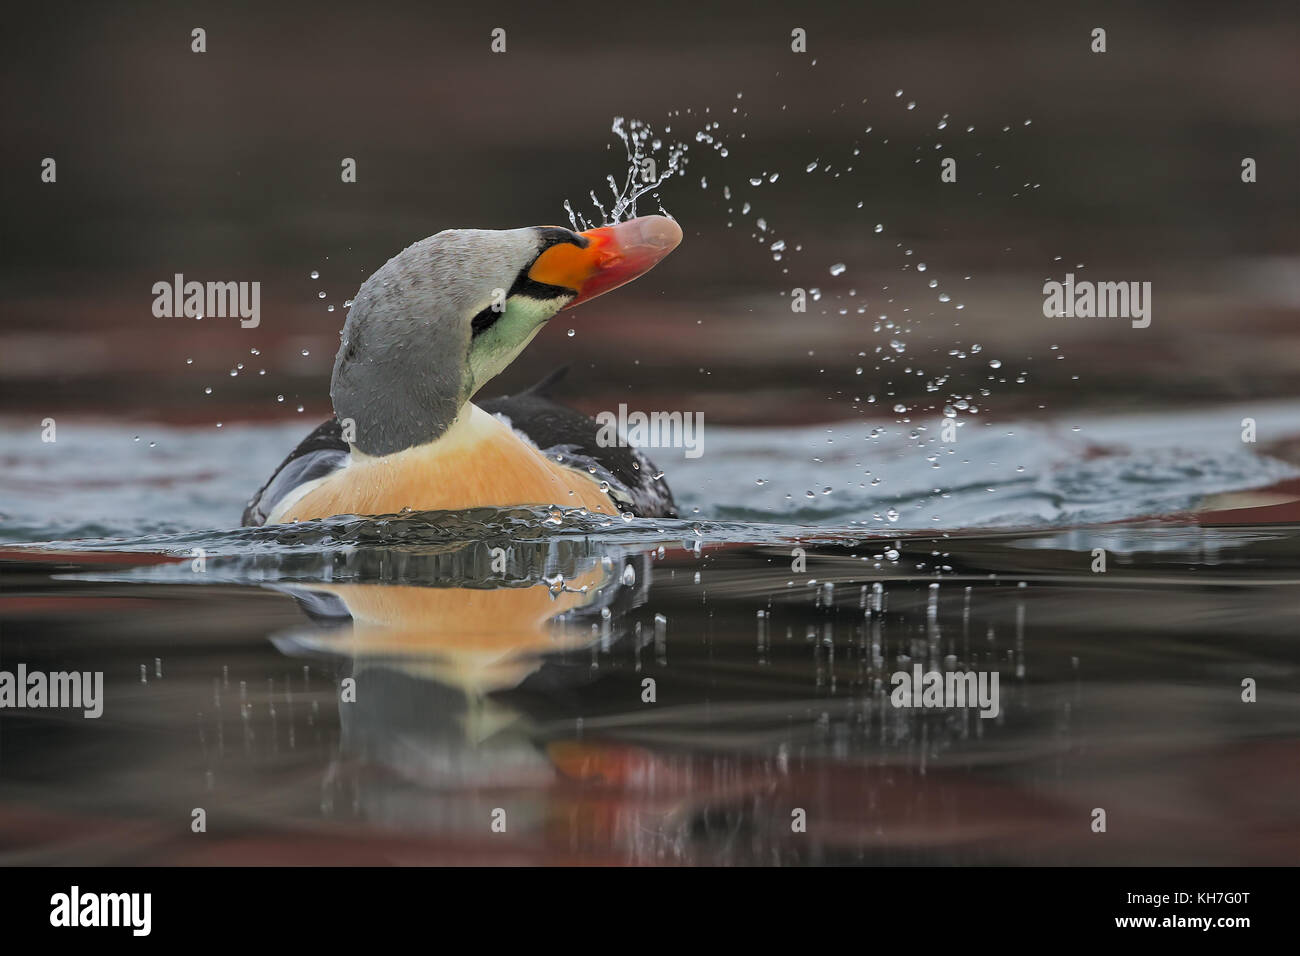 King eider dripping water - Stock Image